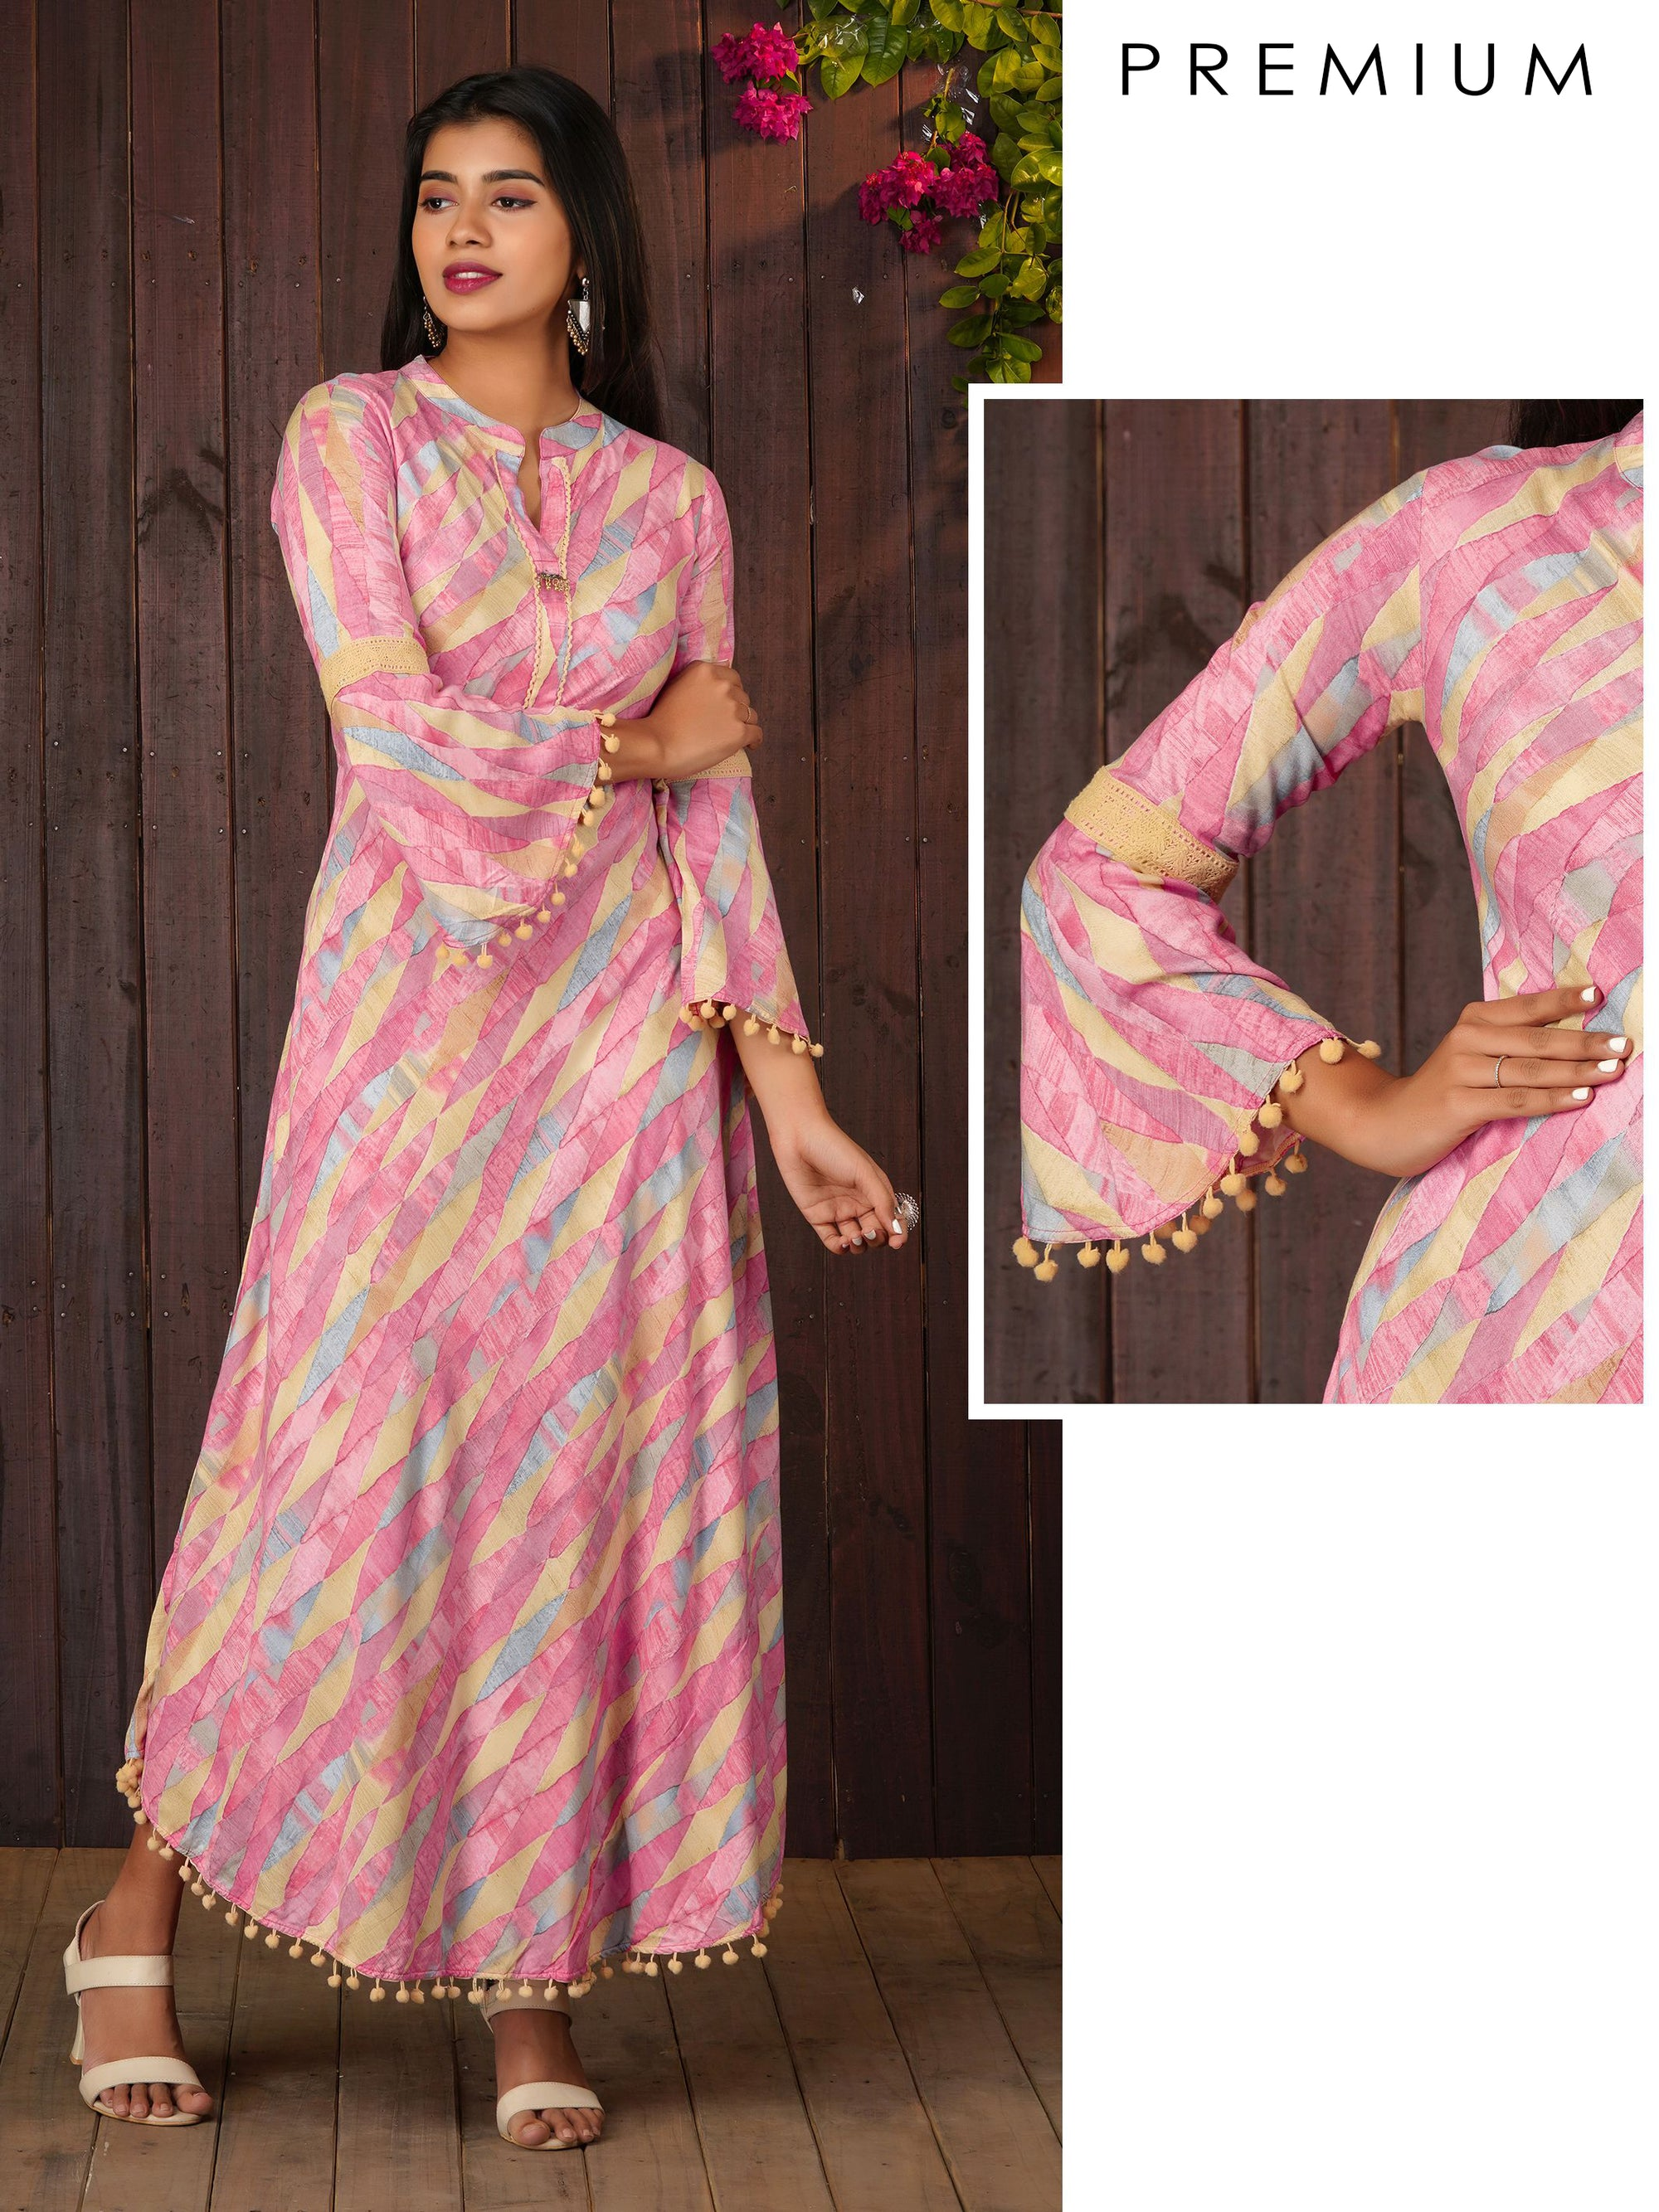 Abstract Printed Bias Cut Maxi With Bell Sleeves - Pink